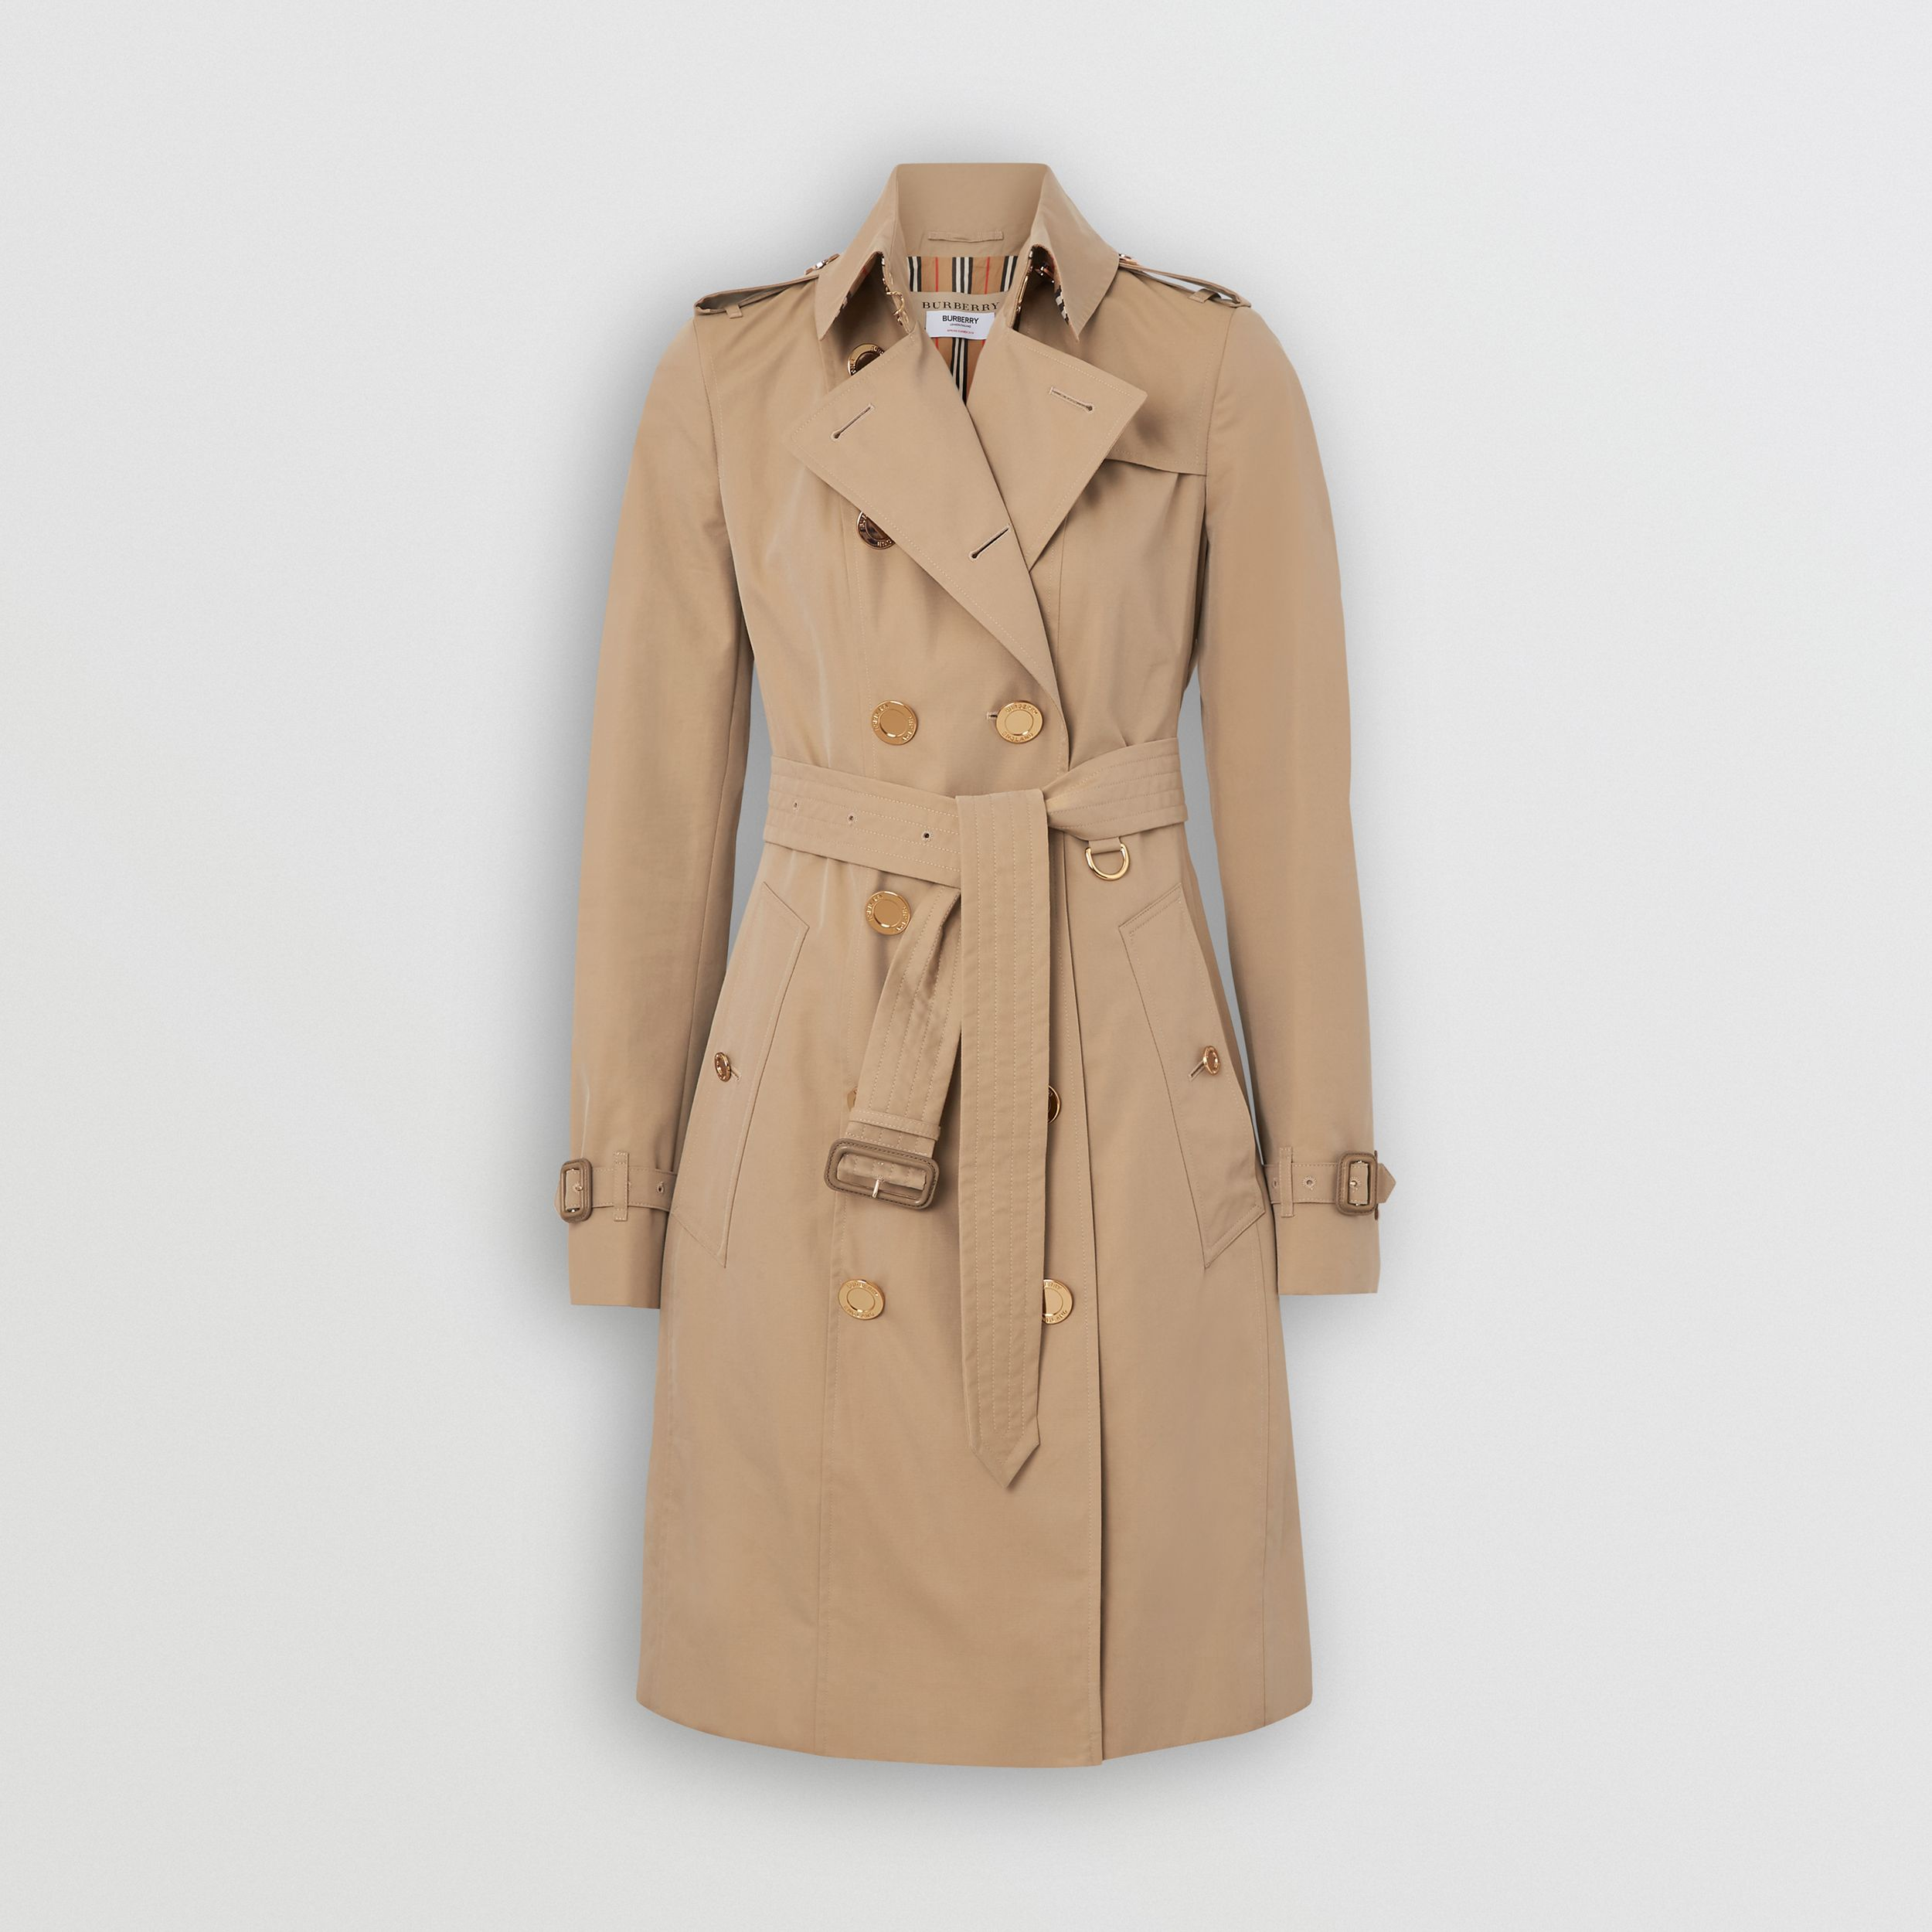 Gold Button Cotton Gabardine Trench Coat in Honey - Women | Burberry Hong Kong S.A.R. - 4